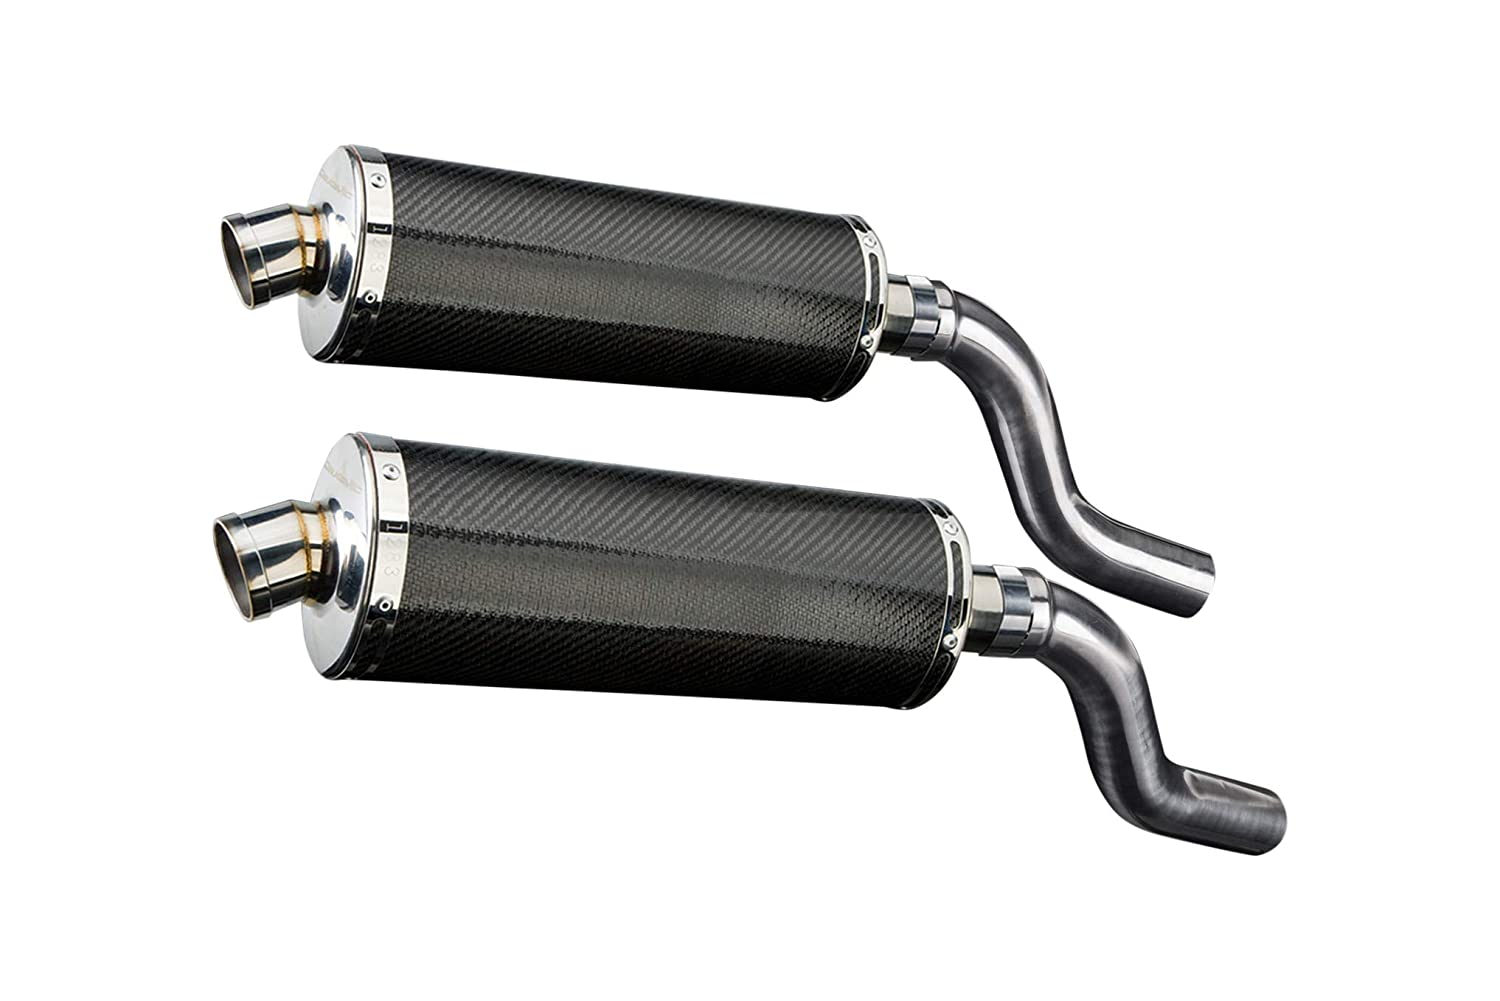 Amazon.com: Delkevic Aftermarket Slip On compatible with ...